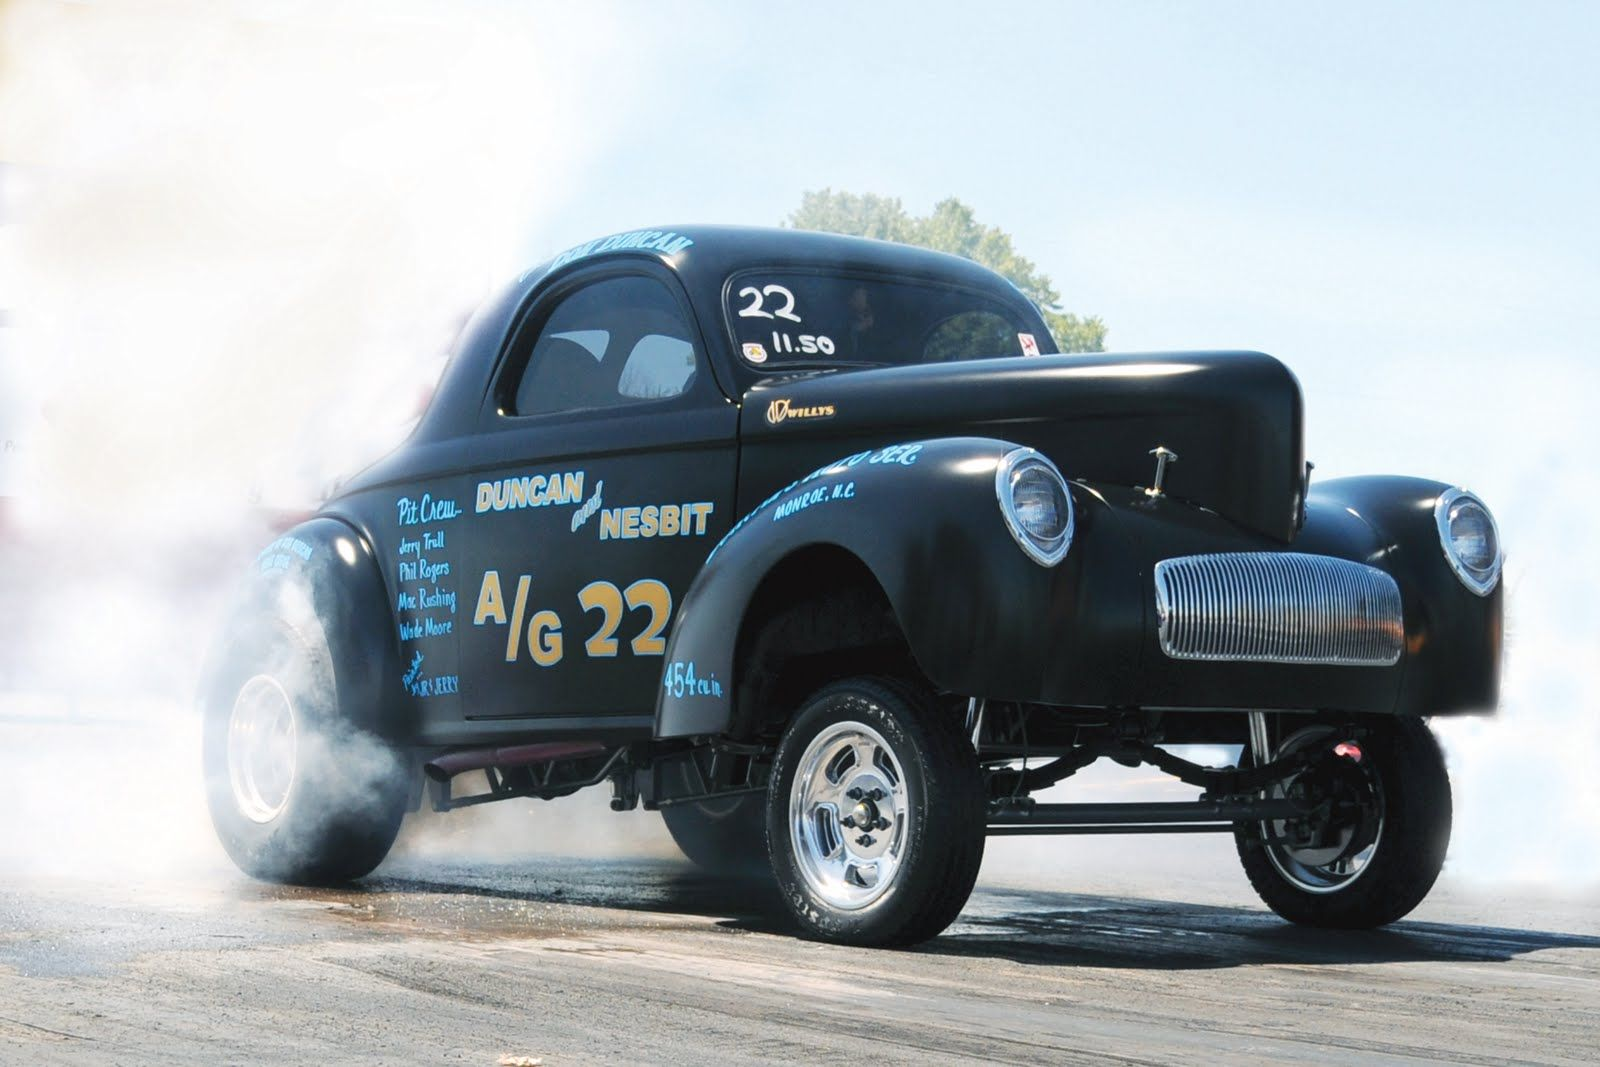 photos of 40/41 willys gassers | For Sale: \'41 WILLYS | 40/41 willys ...